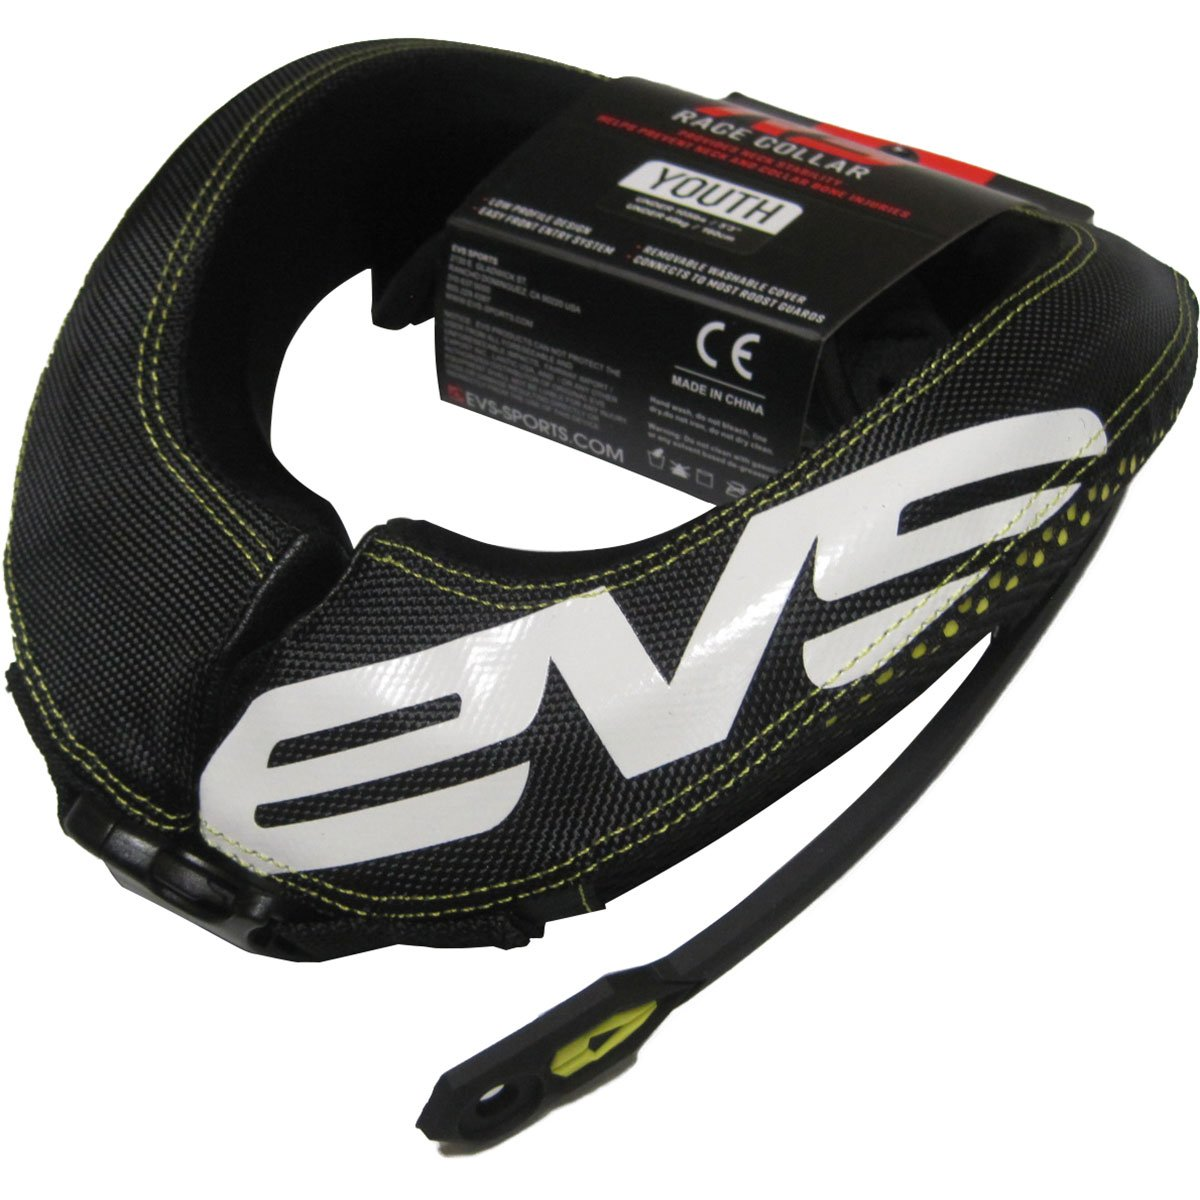 EVS RC3 Youth Race Collar MX/Off-Road/Dirt Bike Motorcycle Body Armor - Black / One Size by EVS